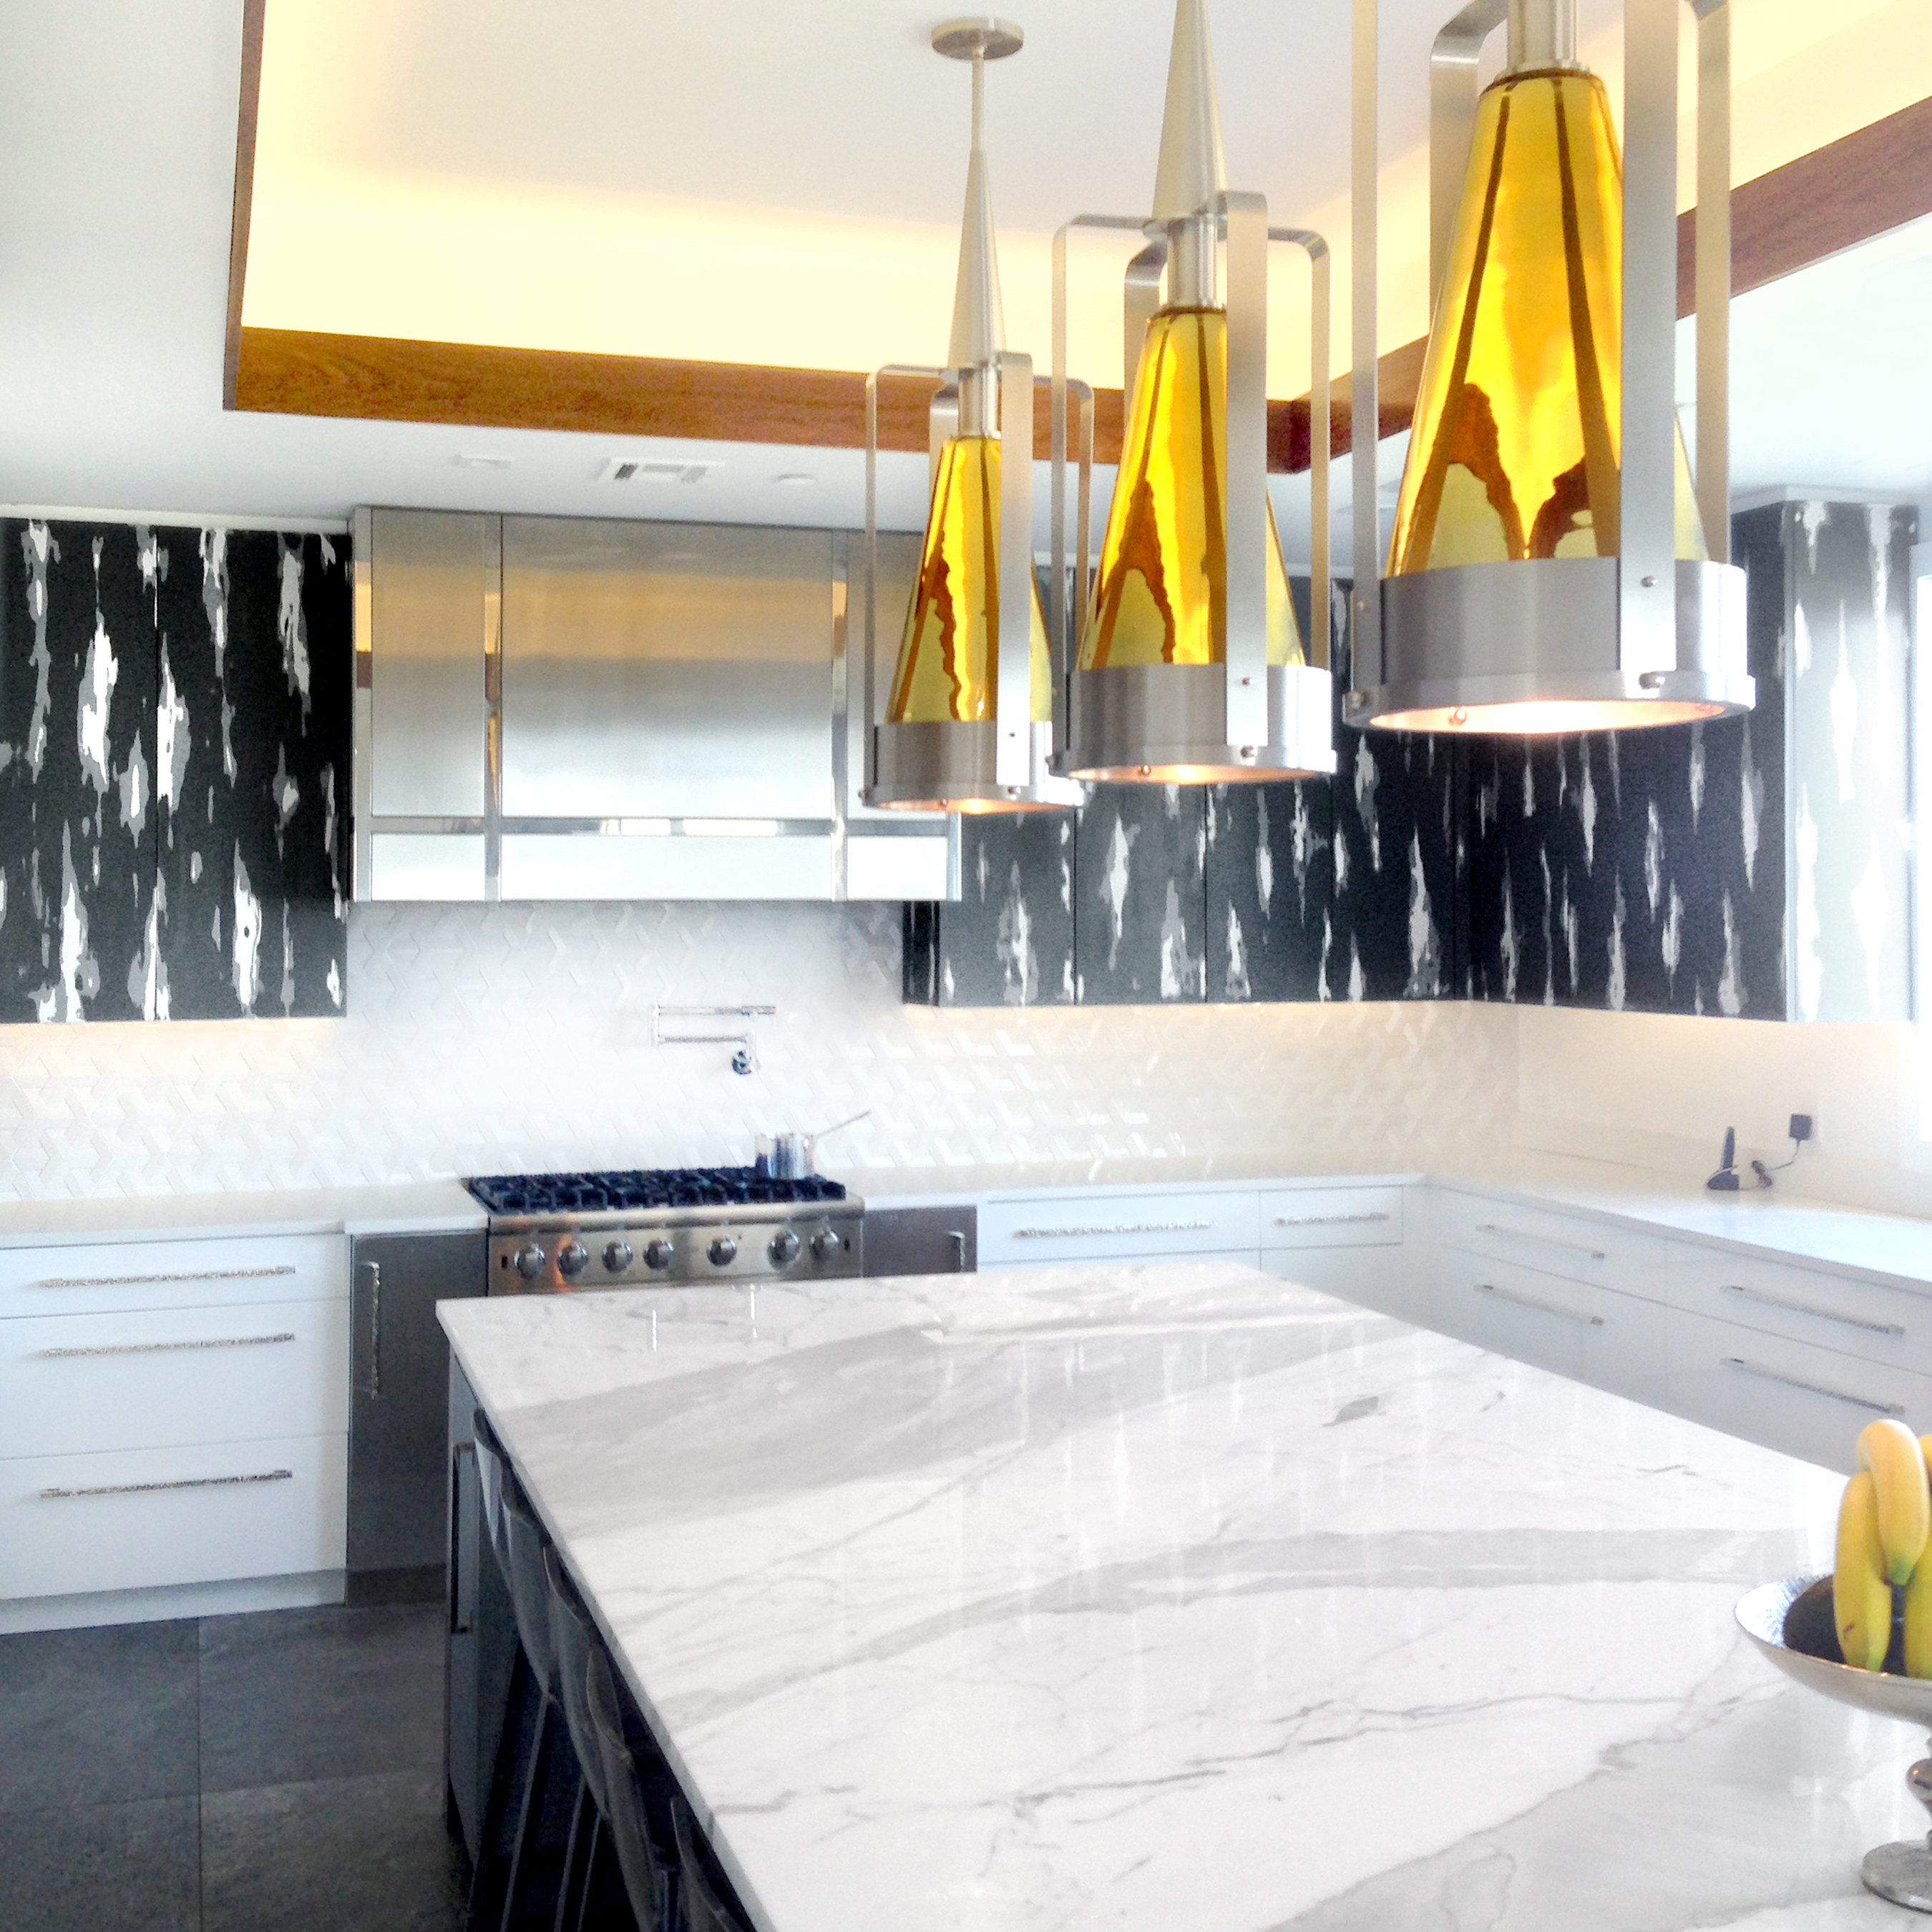 Custom Negoro Nuri cabinet doors in residential kitchen  | interior by Drake/Anderson Design